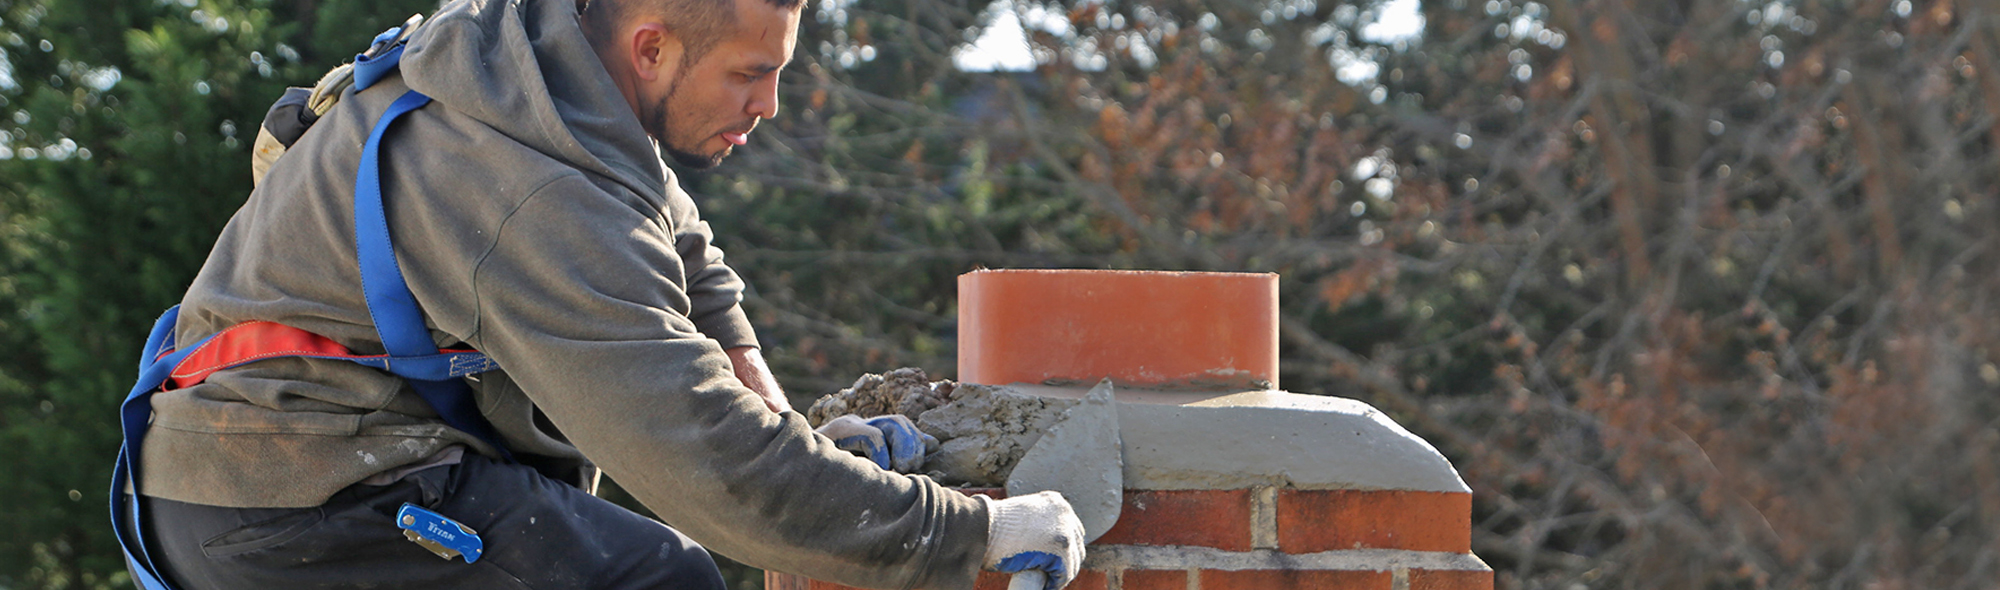 damaged chimney repair. chimney crown repair for leaking chimney